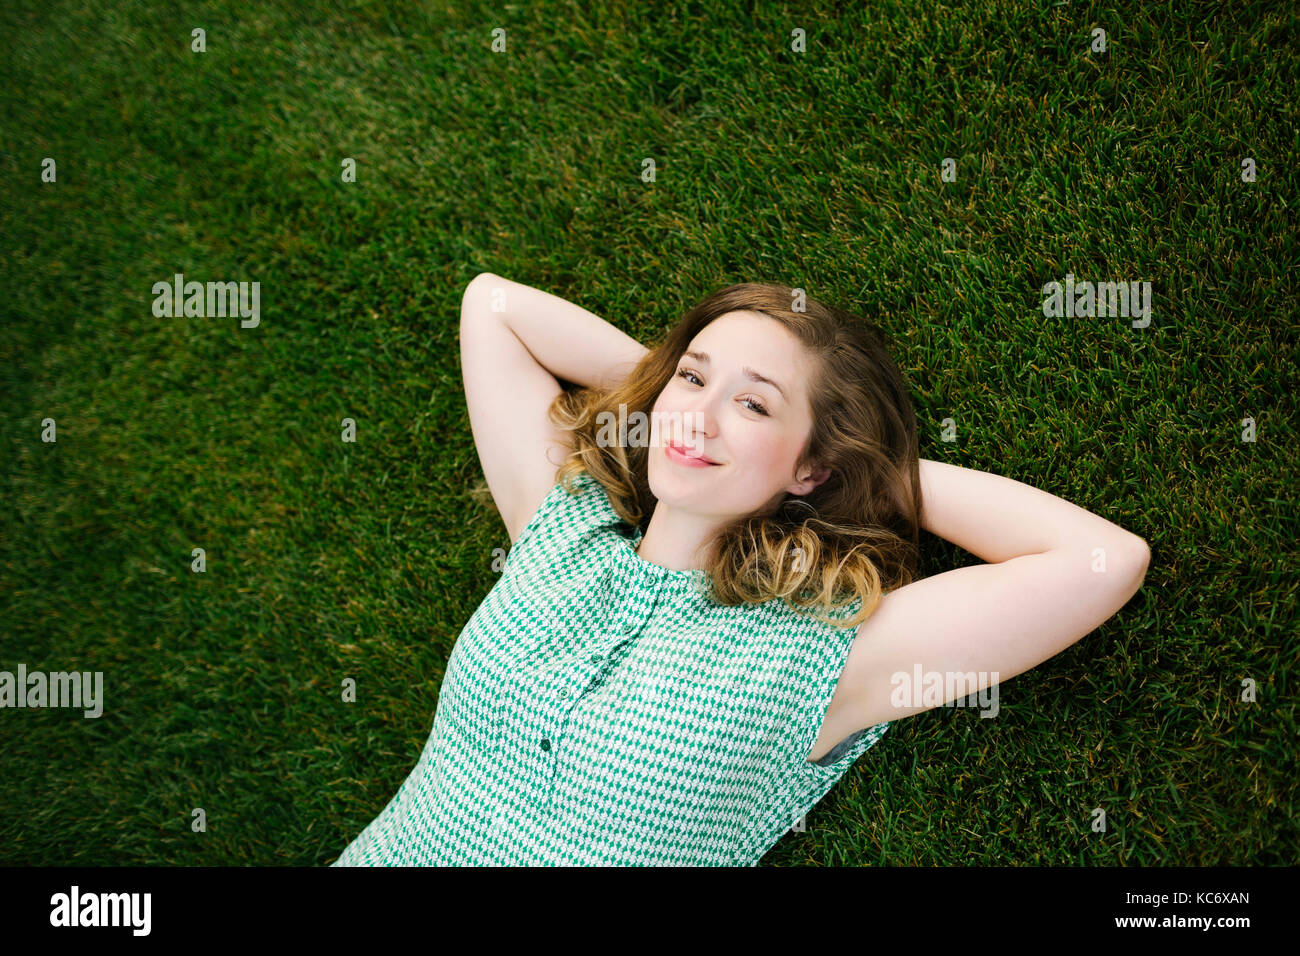 Portrait of woman lying on grass and looking at camera - Stock Image